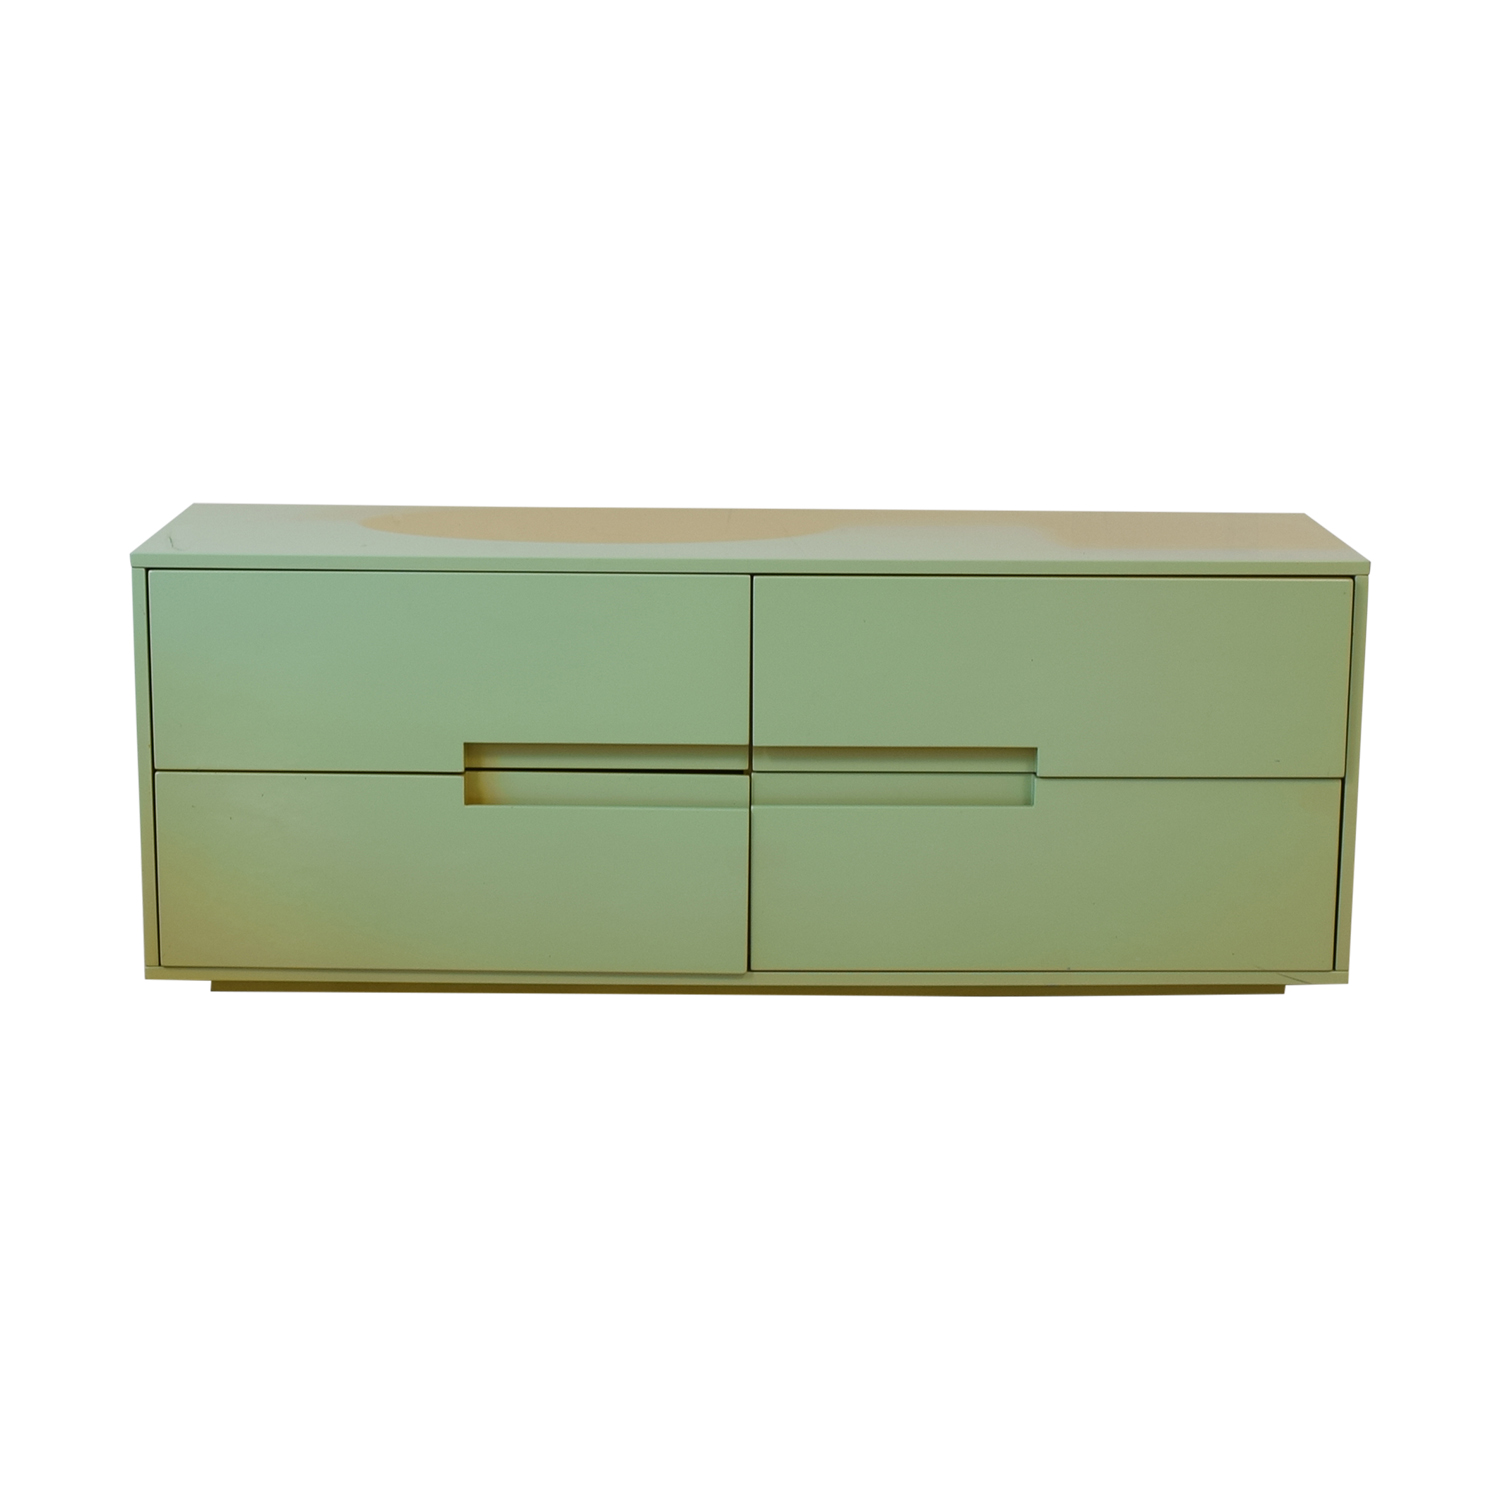 CB2 Cb2 Latitude Green Low Dresser